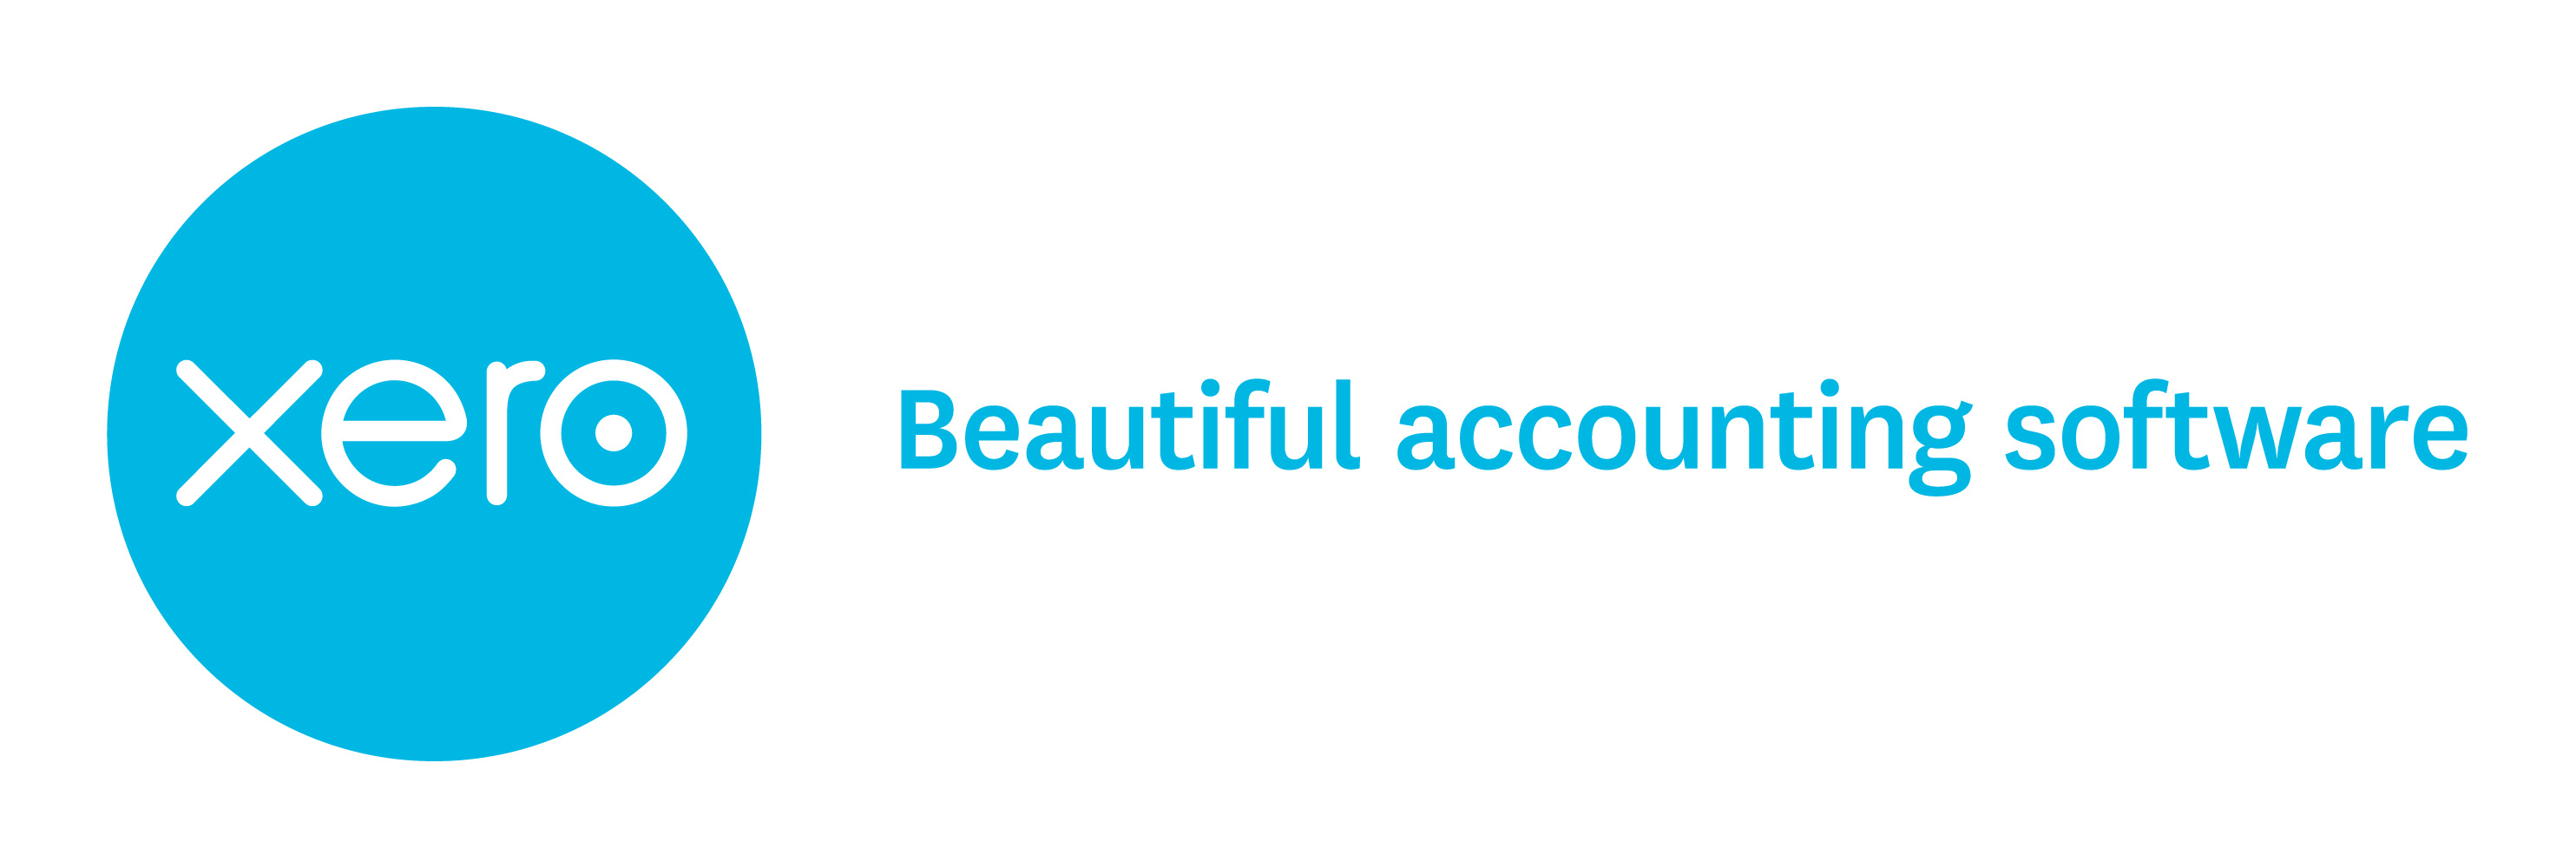 Link to Xero Home page for cloud accounting software